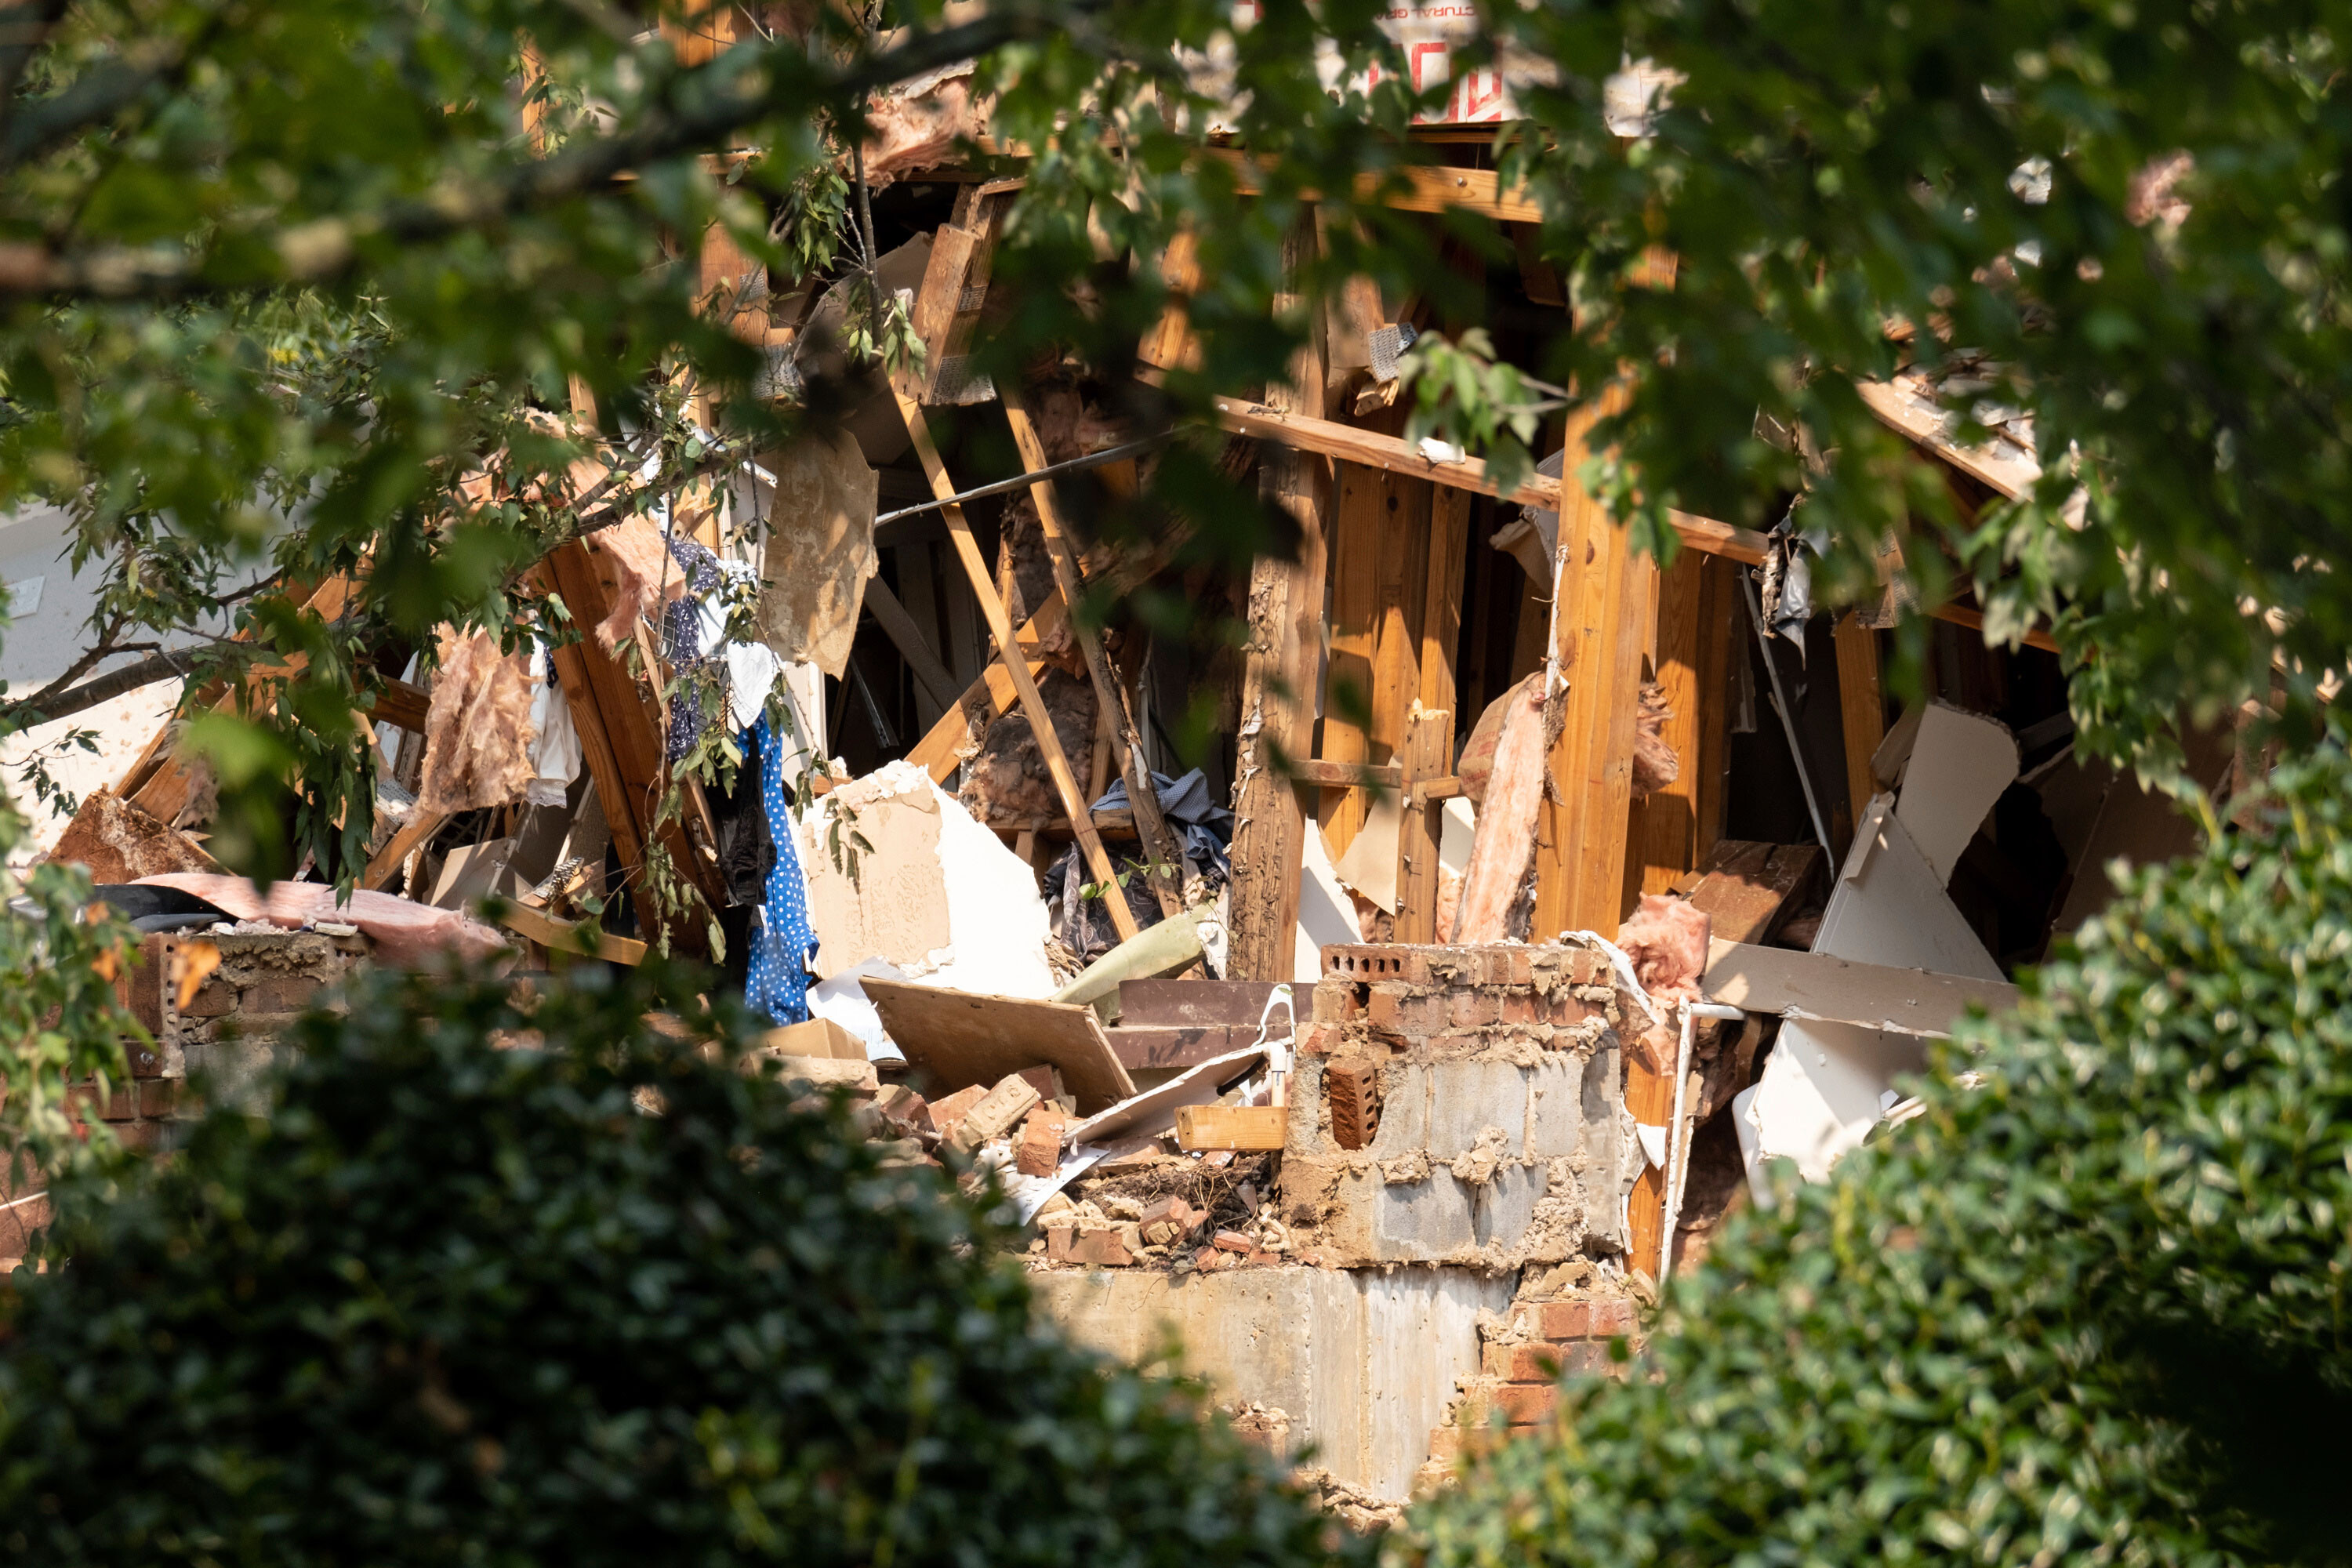 4 injured after explosion at Atlanta-area apartment complex